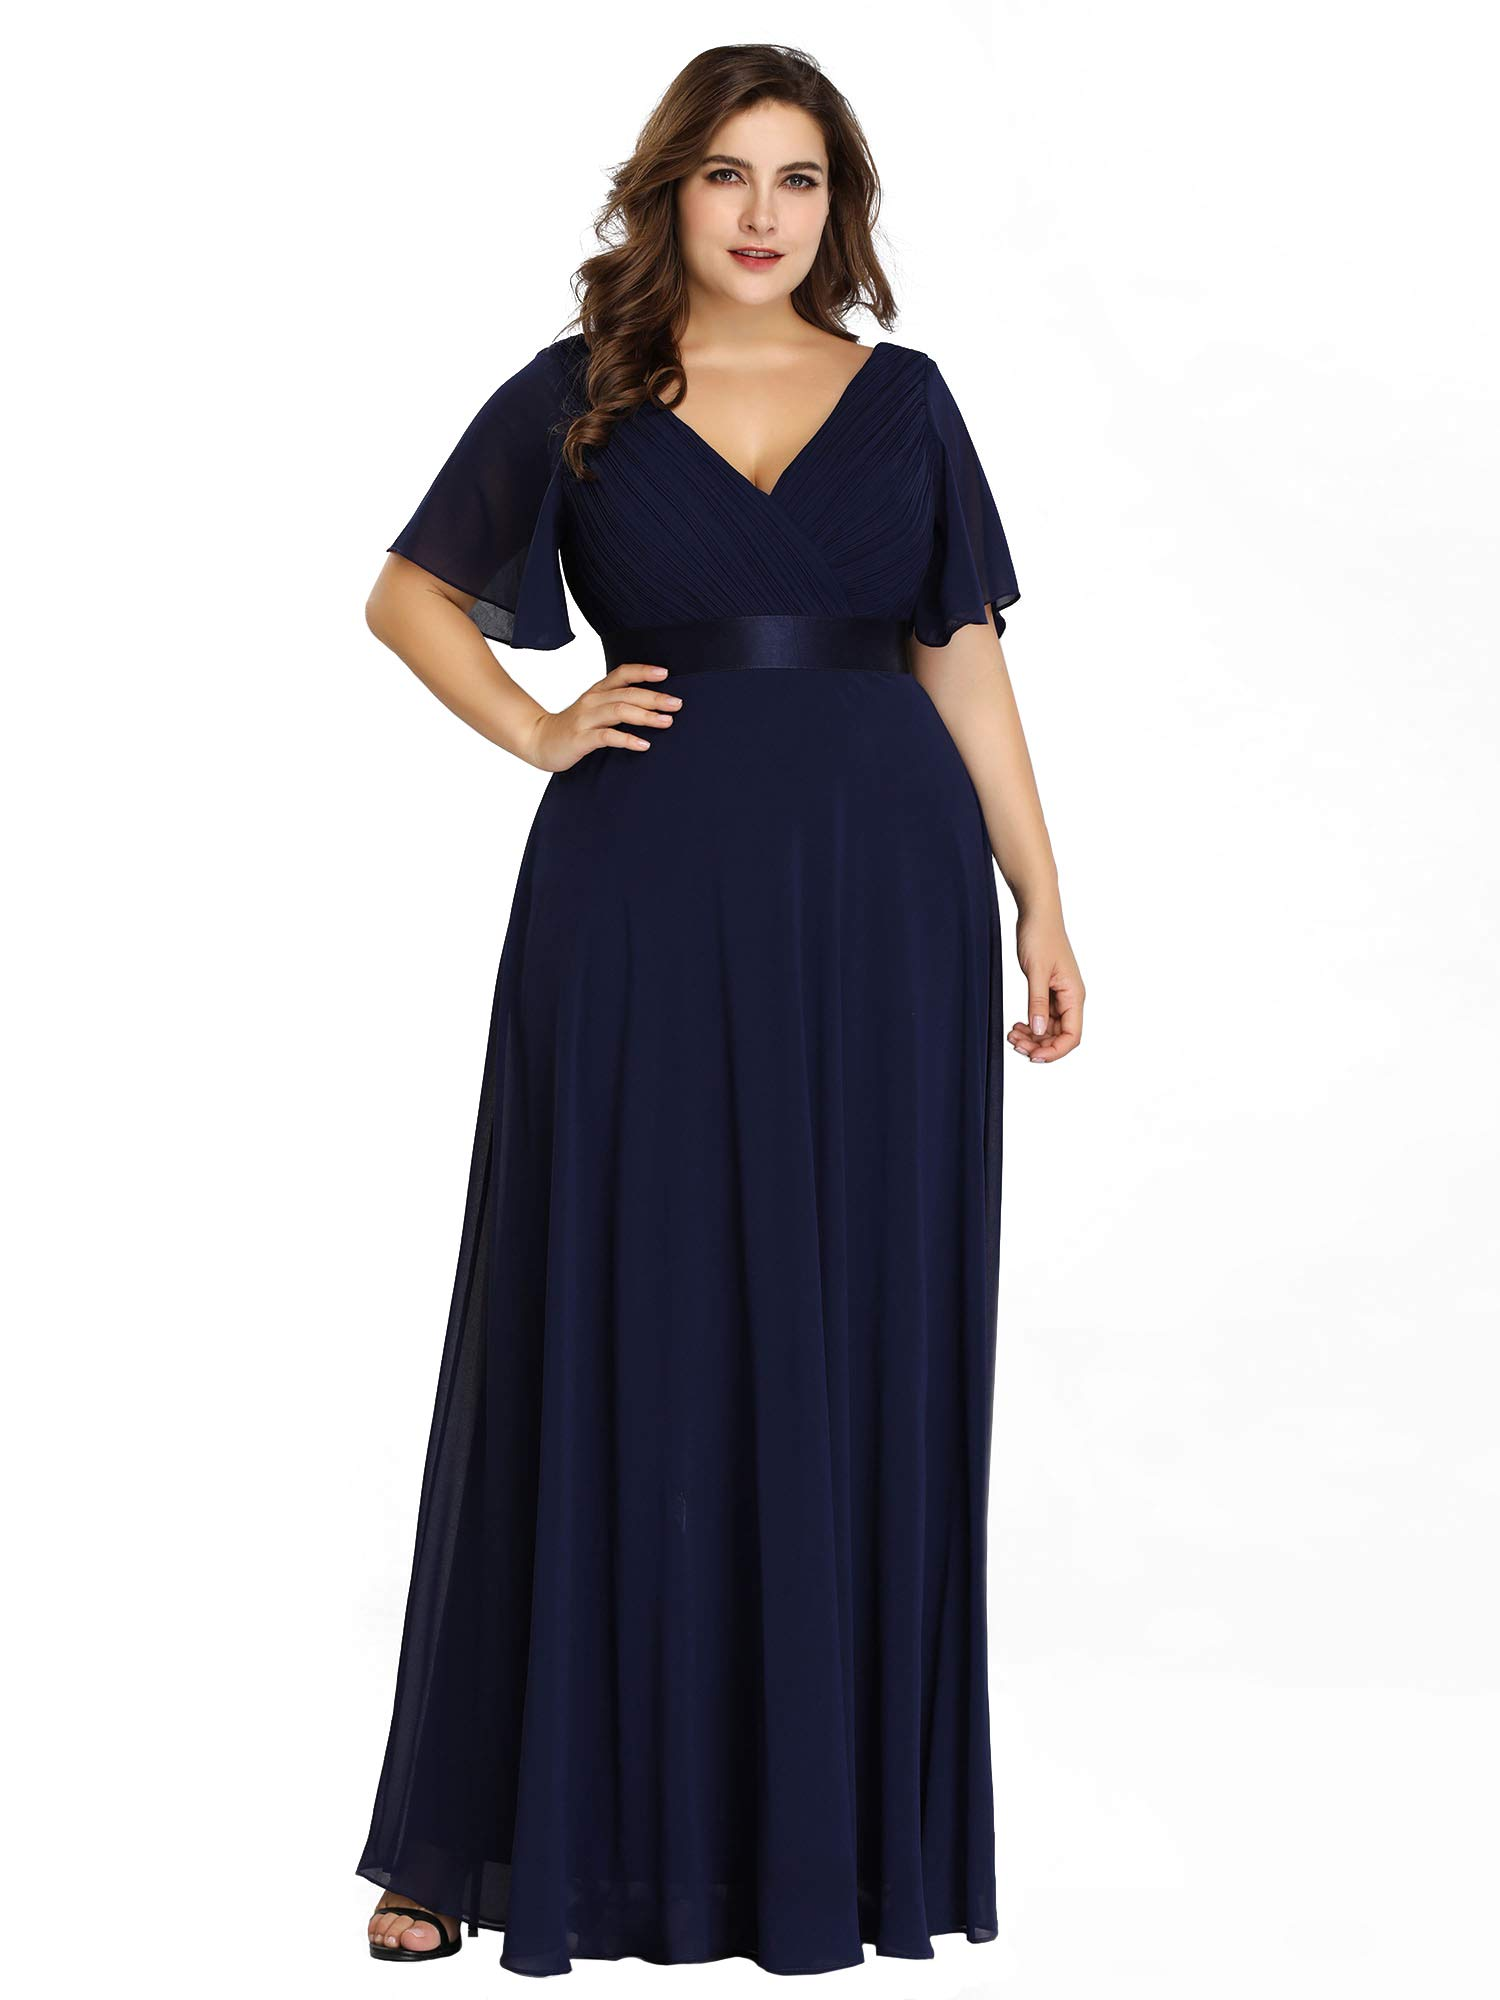 Alisapan Womens Plus Size Evening Party Chiffon Wedding Guest Dresses Navy  Blue US26